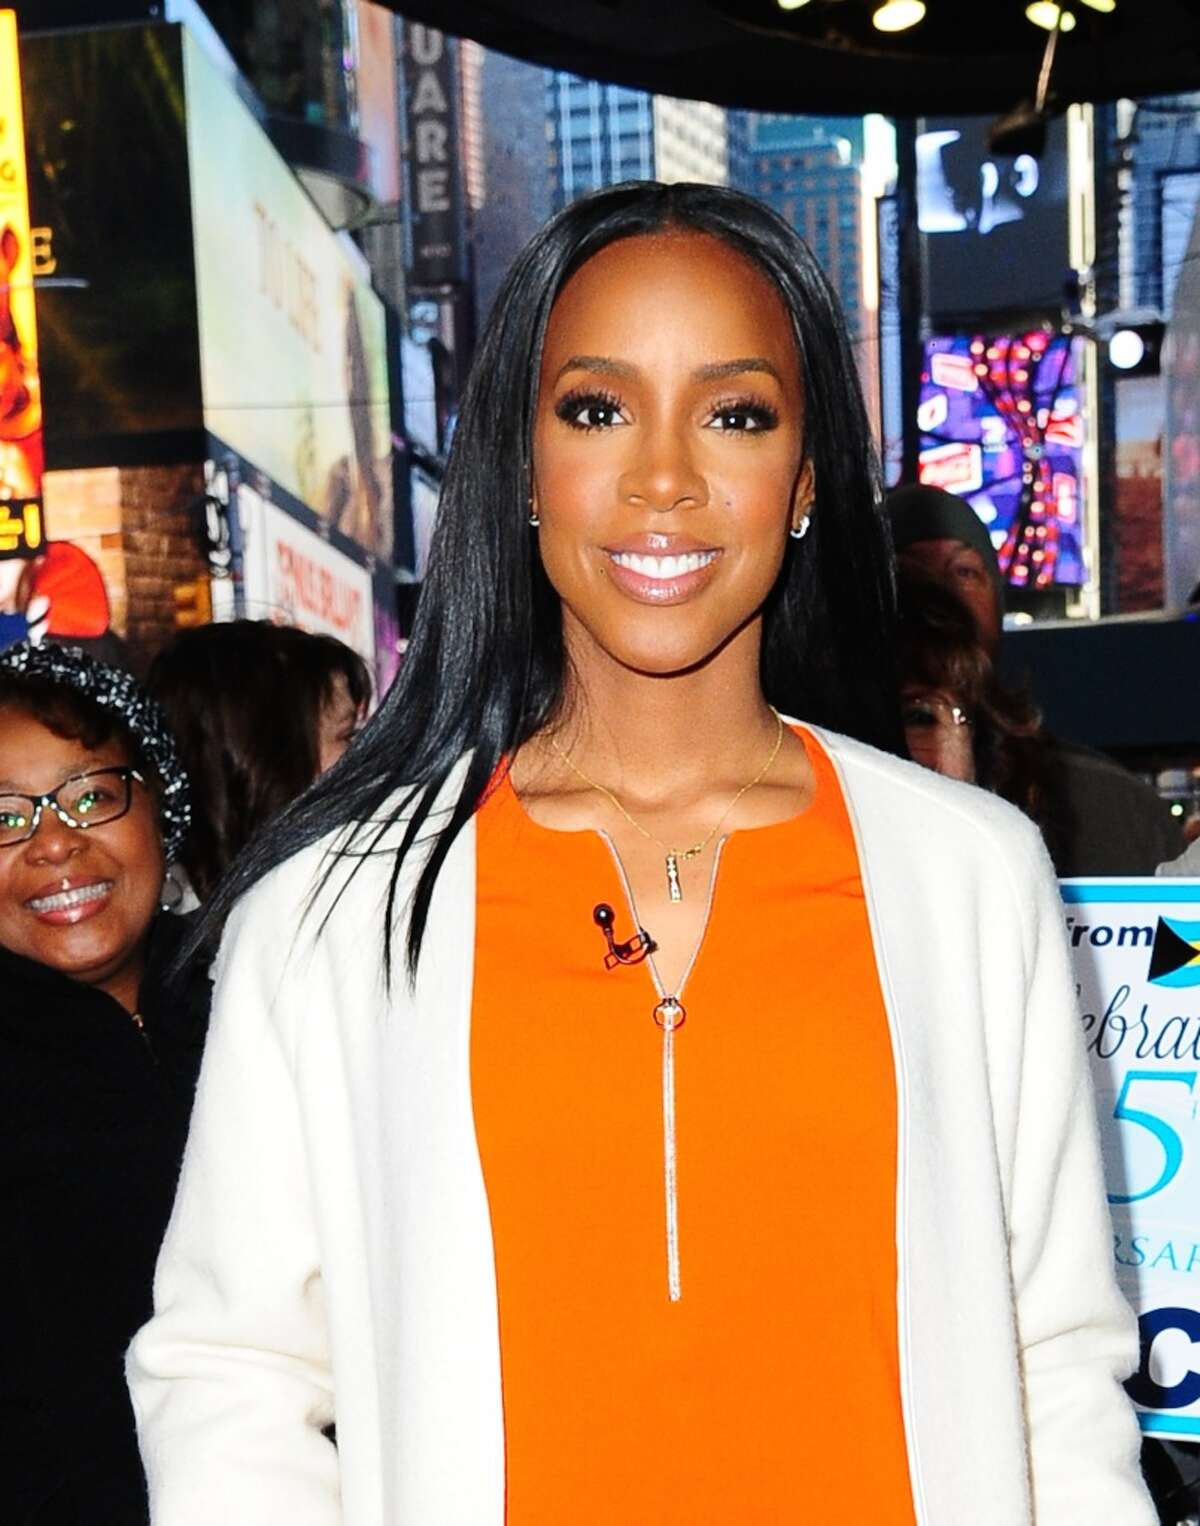 Singer Kelly Rowland is seen on the set of